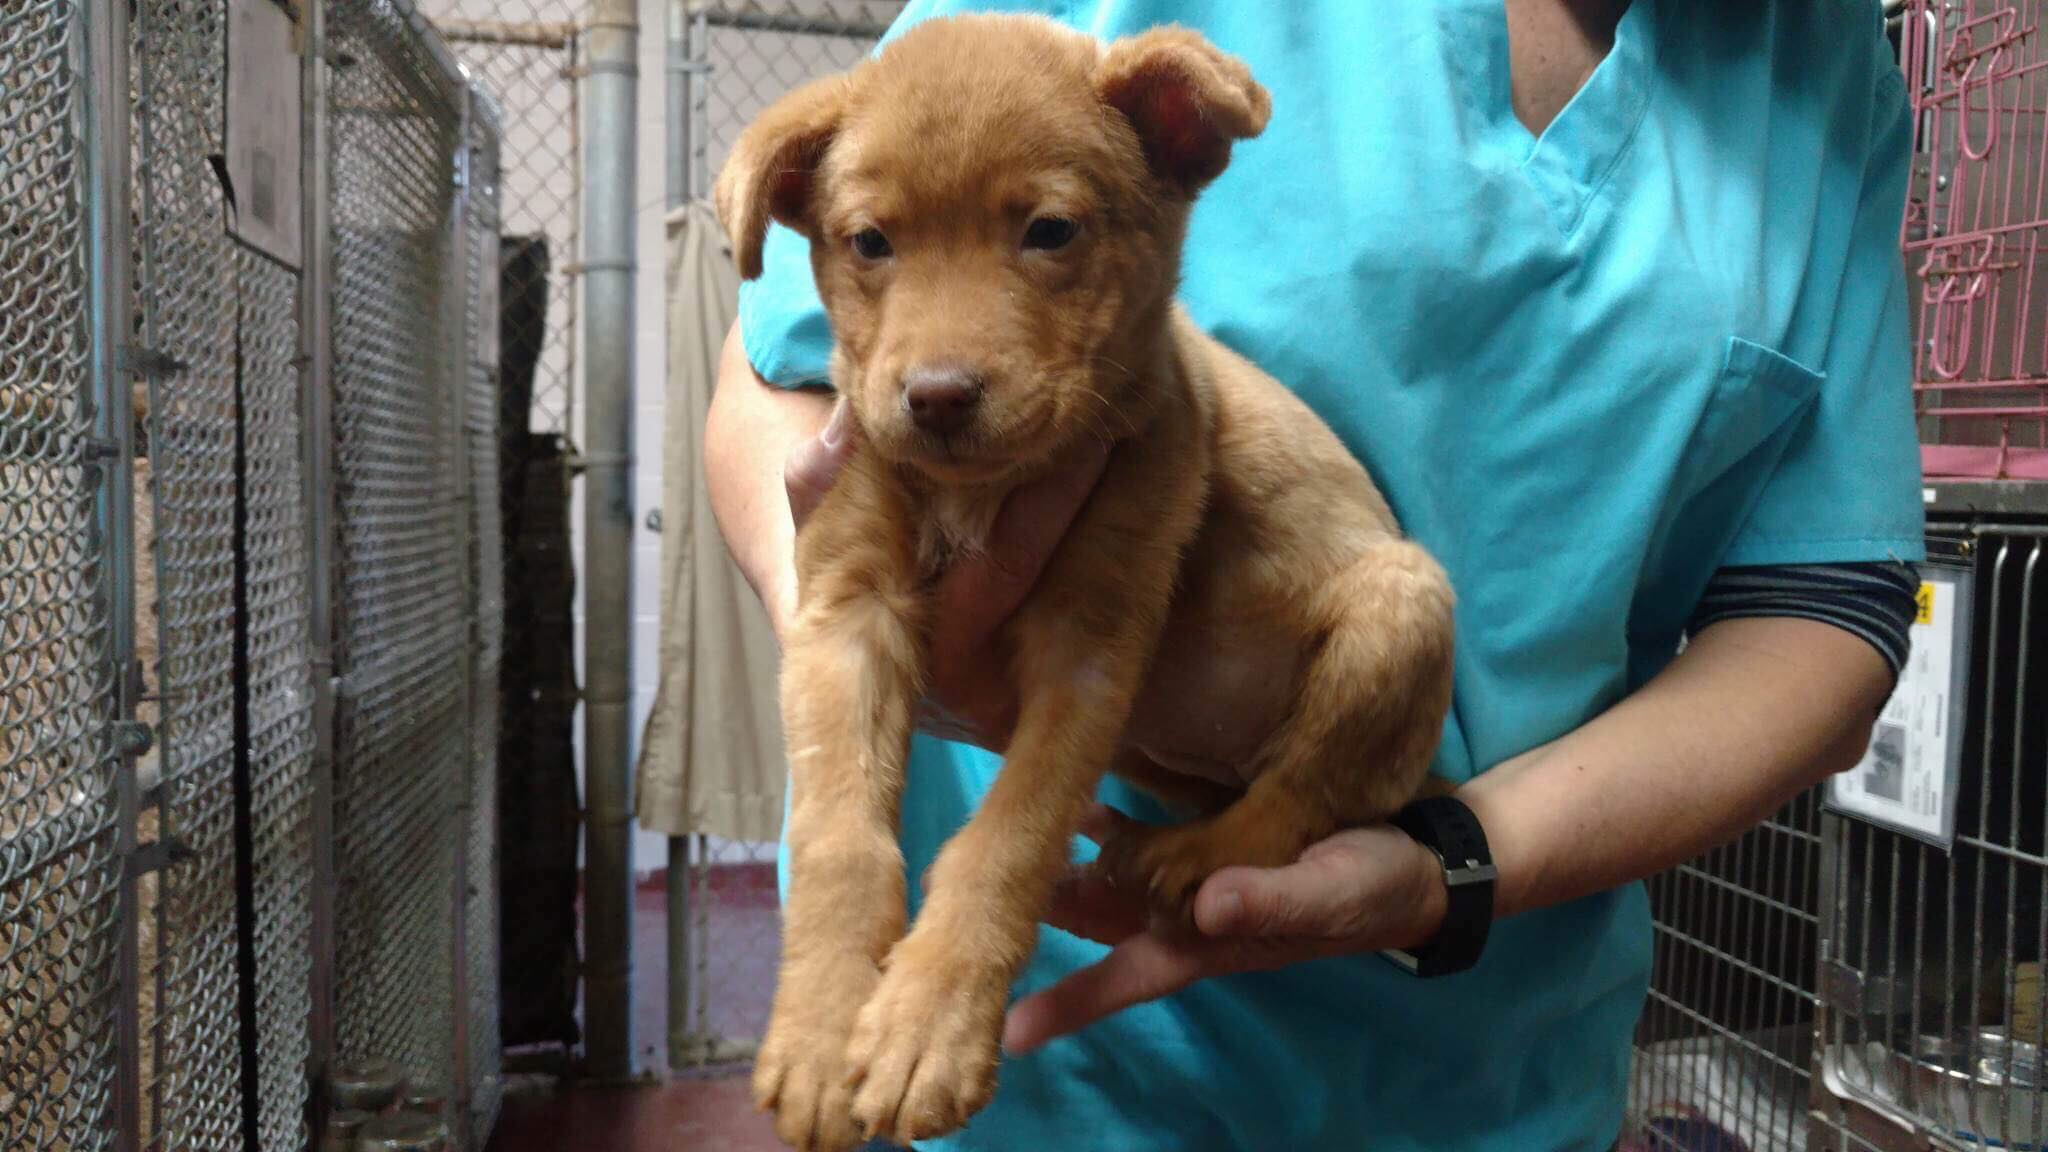 8 week old puppy with broken leg left abandoned for hours at a shelter in Georgia.